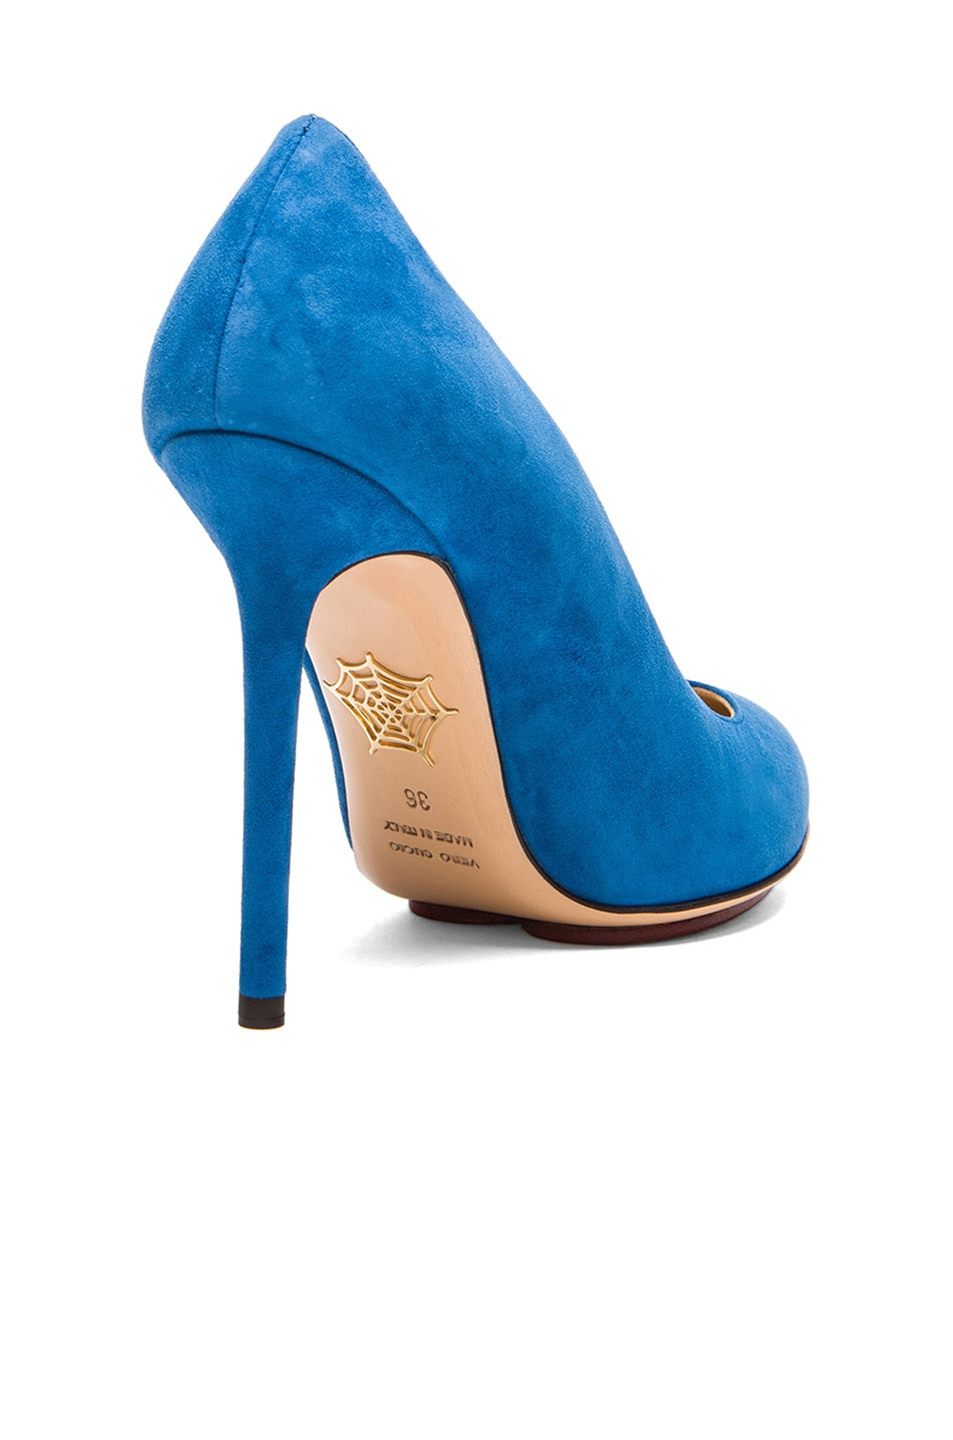 Image 3 of Charlotte Olympia Monroe Suede Pumps in Cobalt Blue